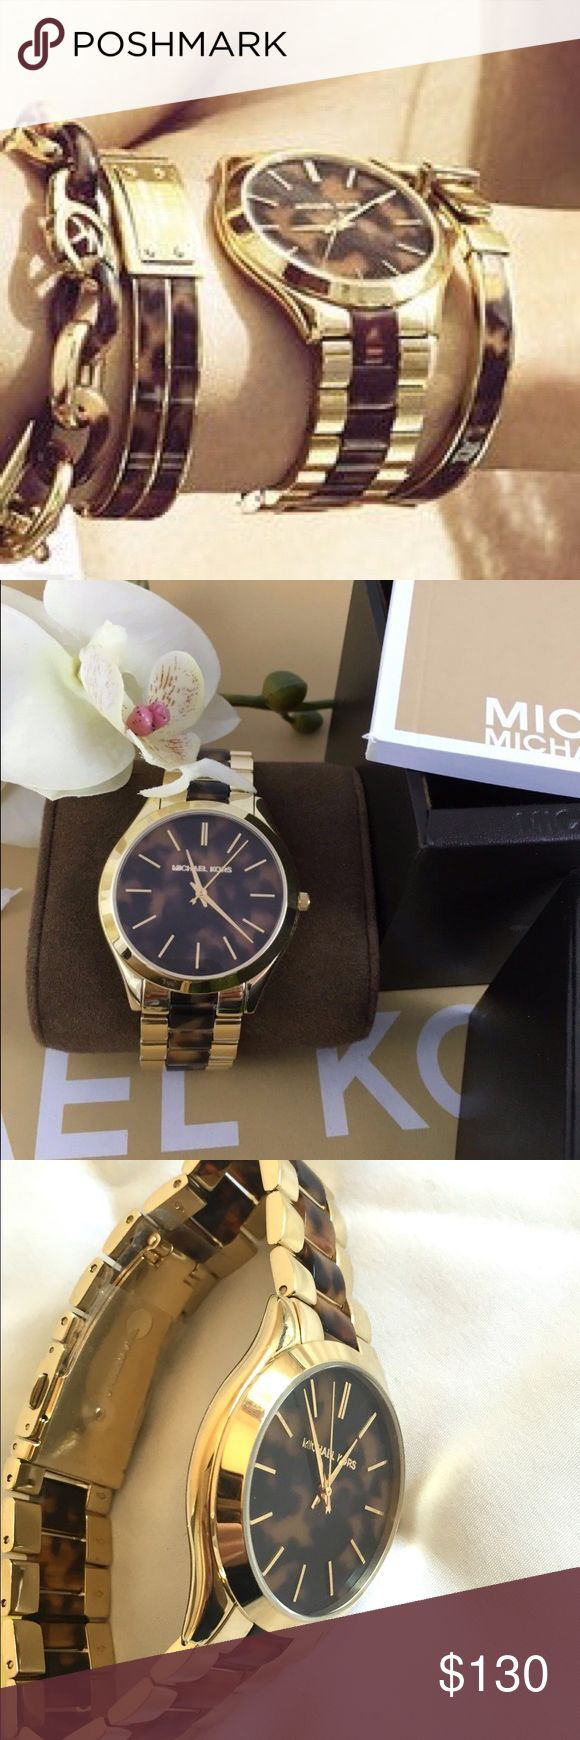 Michael Kors Slim Runway Tortoise & Gold Watch Michael Kors Slim Runway Tortoise & Gold-Tone Women's Watch MK4284. Brand New without tags. Comes in box, all protective films still on! Perfect! Additional Information: MovementQuartz Case TypeStainless Steel Case ColorGold Analog/DigitalAnalog Strap ColorTwo Tone Strap TypeStainless Steel Dial ColourBrown Case Size42.0 mm Water Resistance50m (165ft) Michael Kors Accessories Watches